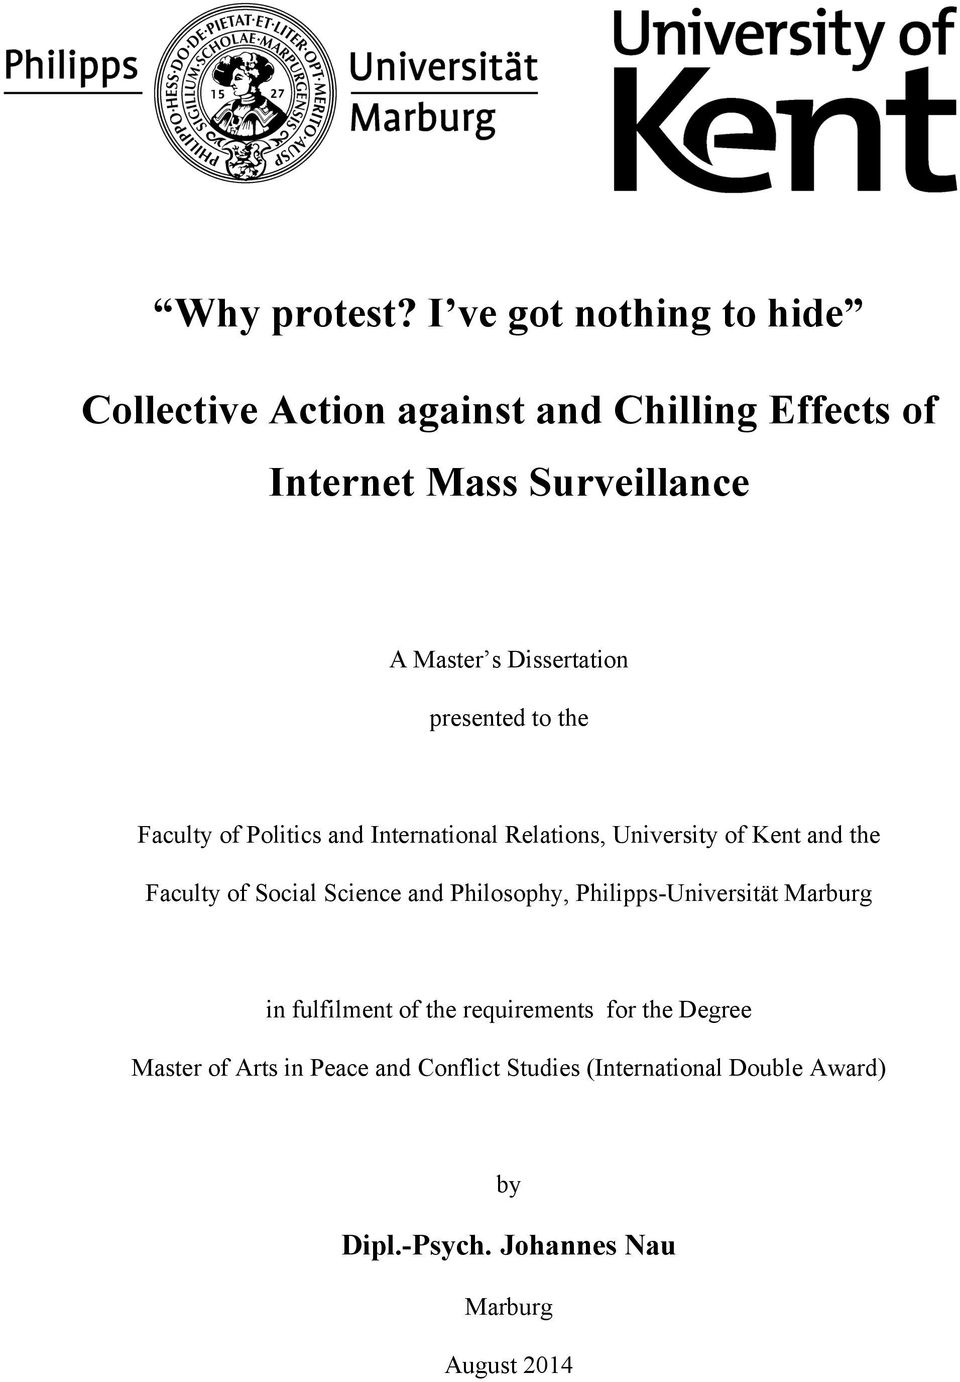 Dissertation presented to the Faculty of Politics and International Relations, University of Kent and the Faculty of